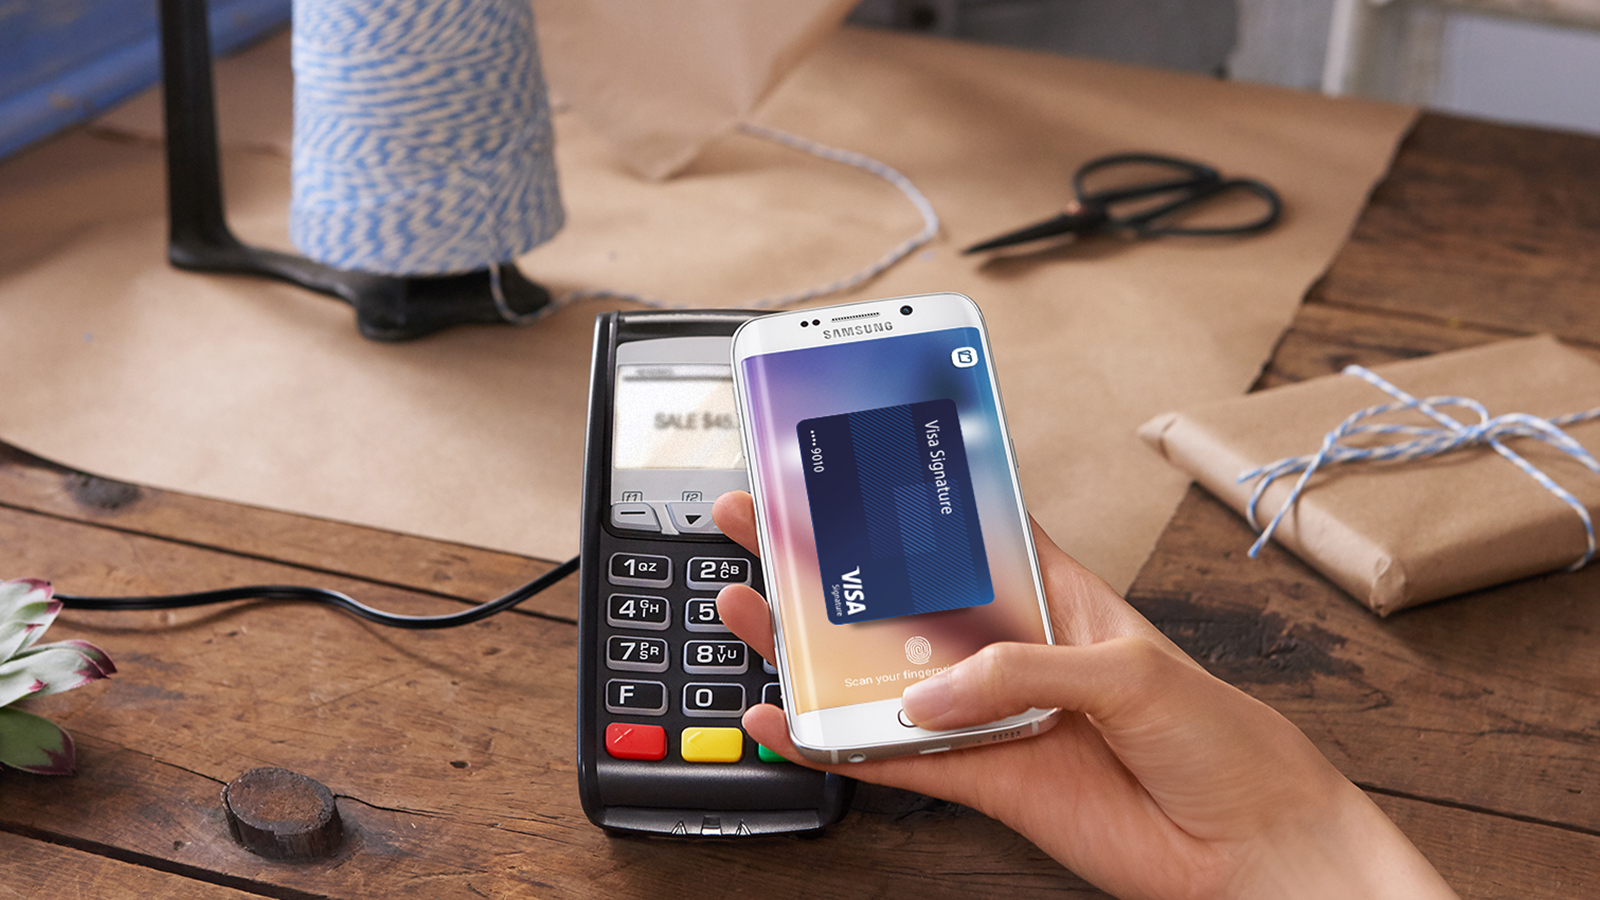 A hand holding a mobile phone over a POS device making a Samsung Pay payment.